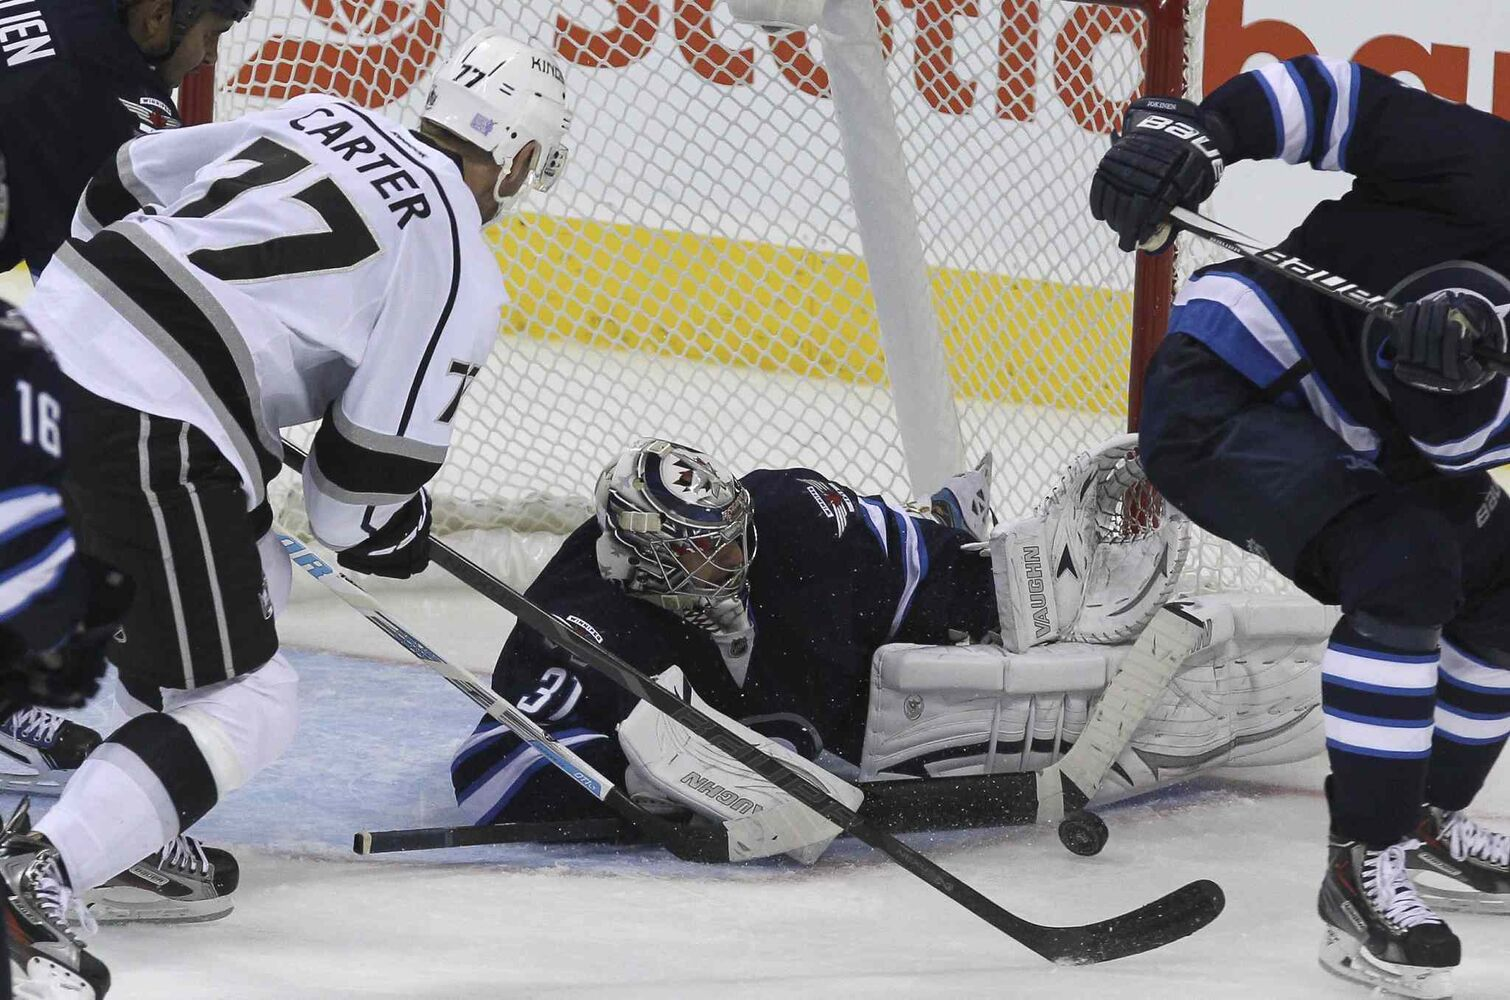 Winnipeg Jets' goaltender Ondrej Pavelec (31) makes a save while Los Angeles Kings' Jeff Carter (77) goes for a rebound in the third period.  (MIKE DEAL / WINNIPEG FREE PRESS)